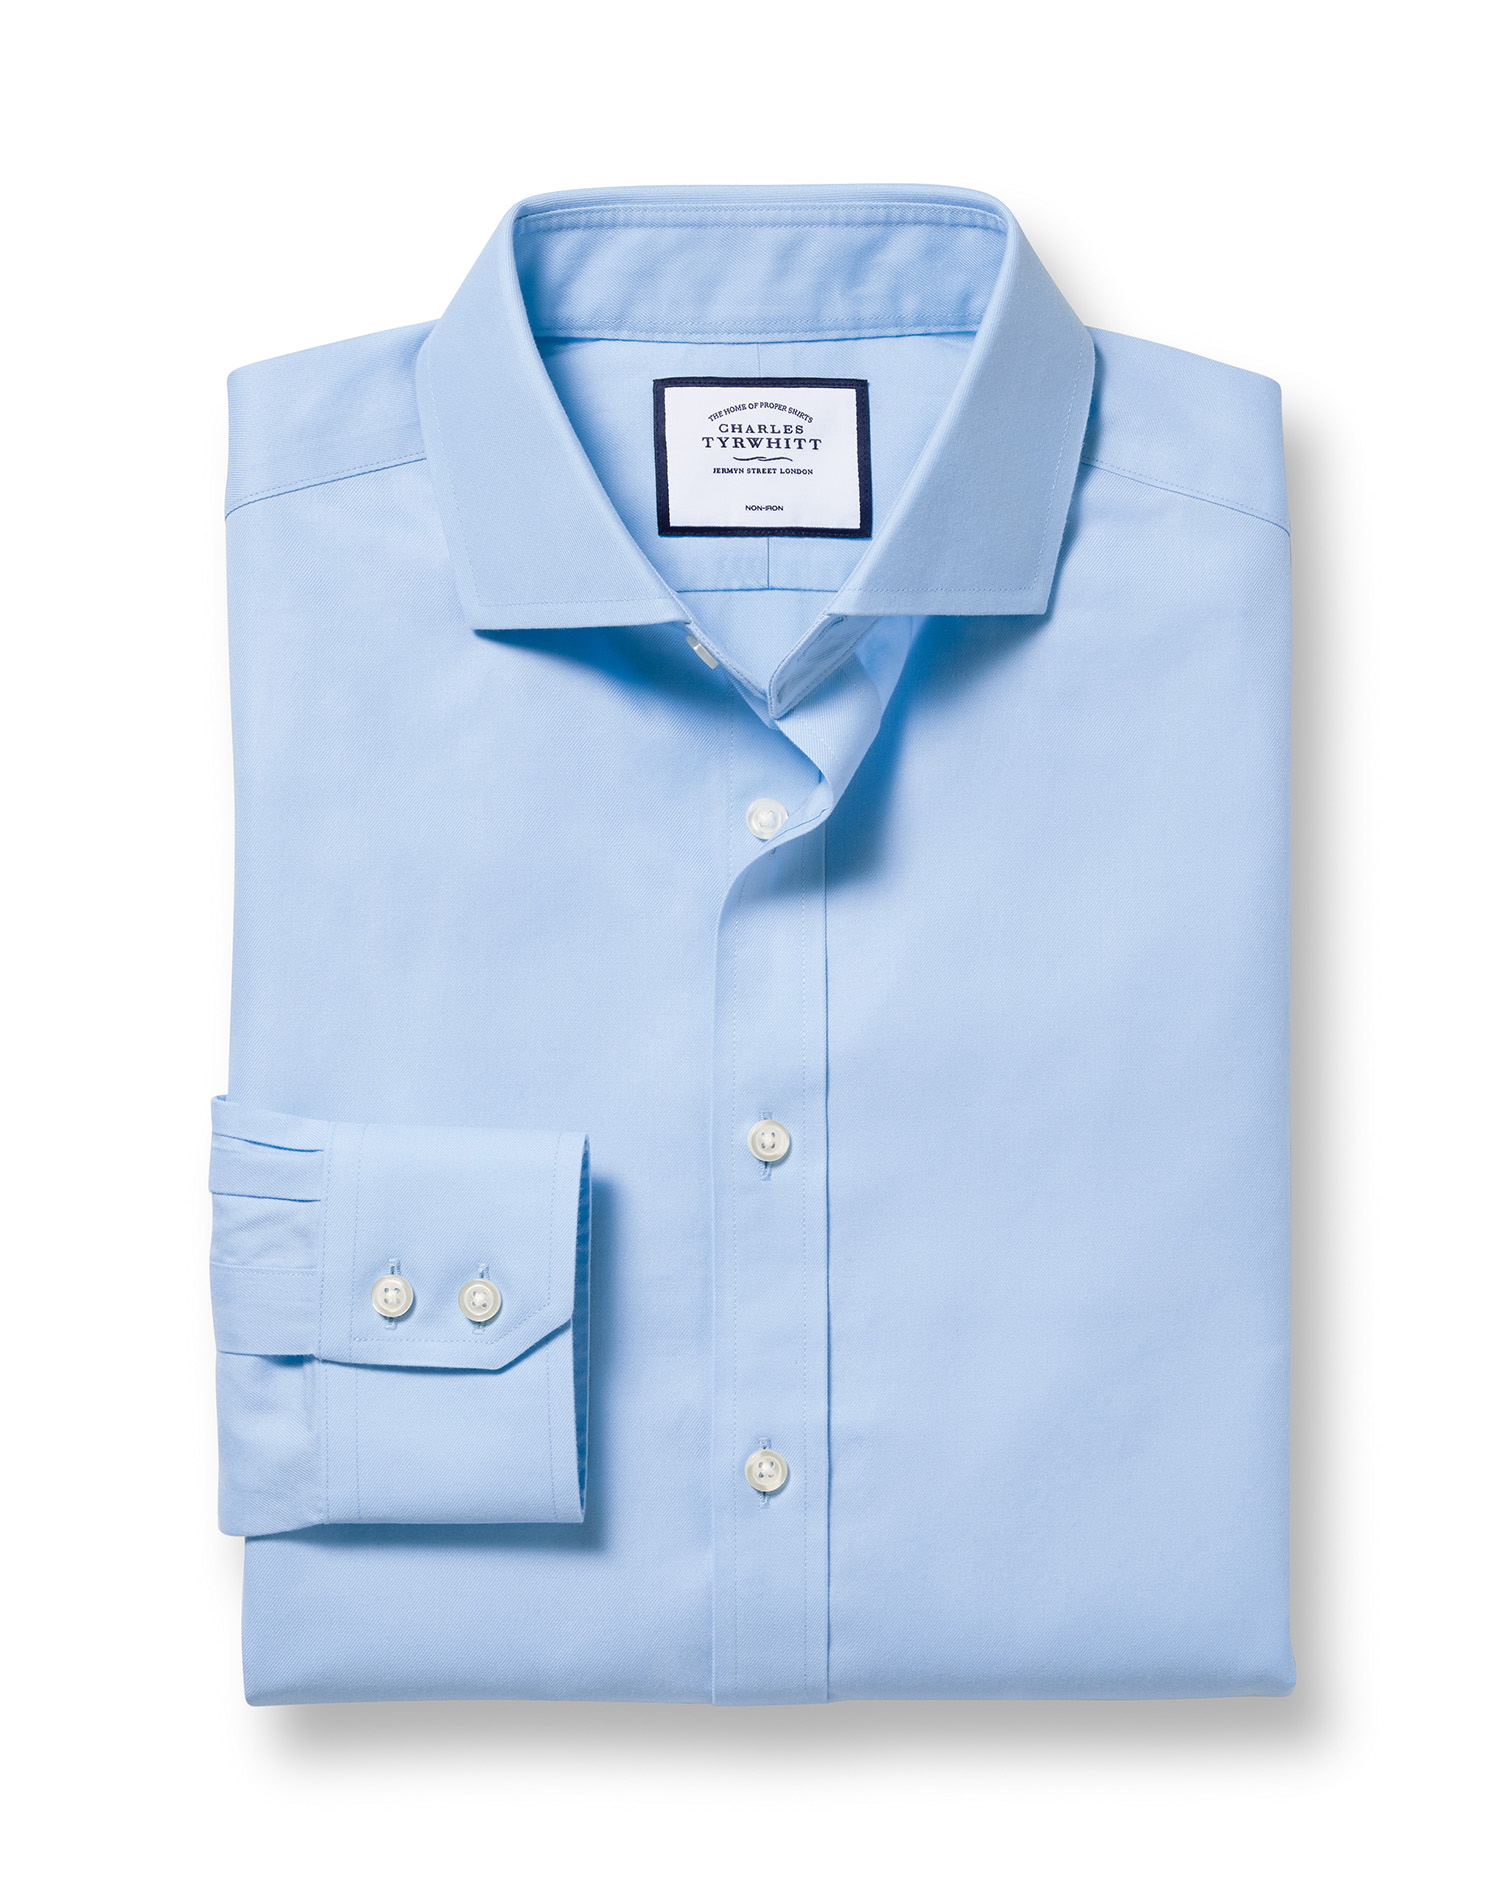 Classic Fit Sky Blue Non-Iron Twill Cutaway Collar Cotton Formal Shirt Single Cuff Size 16.5/34 by C